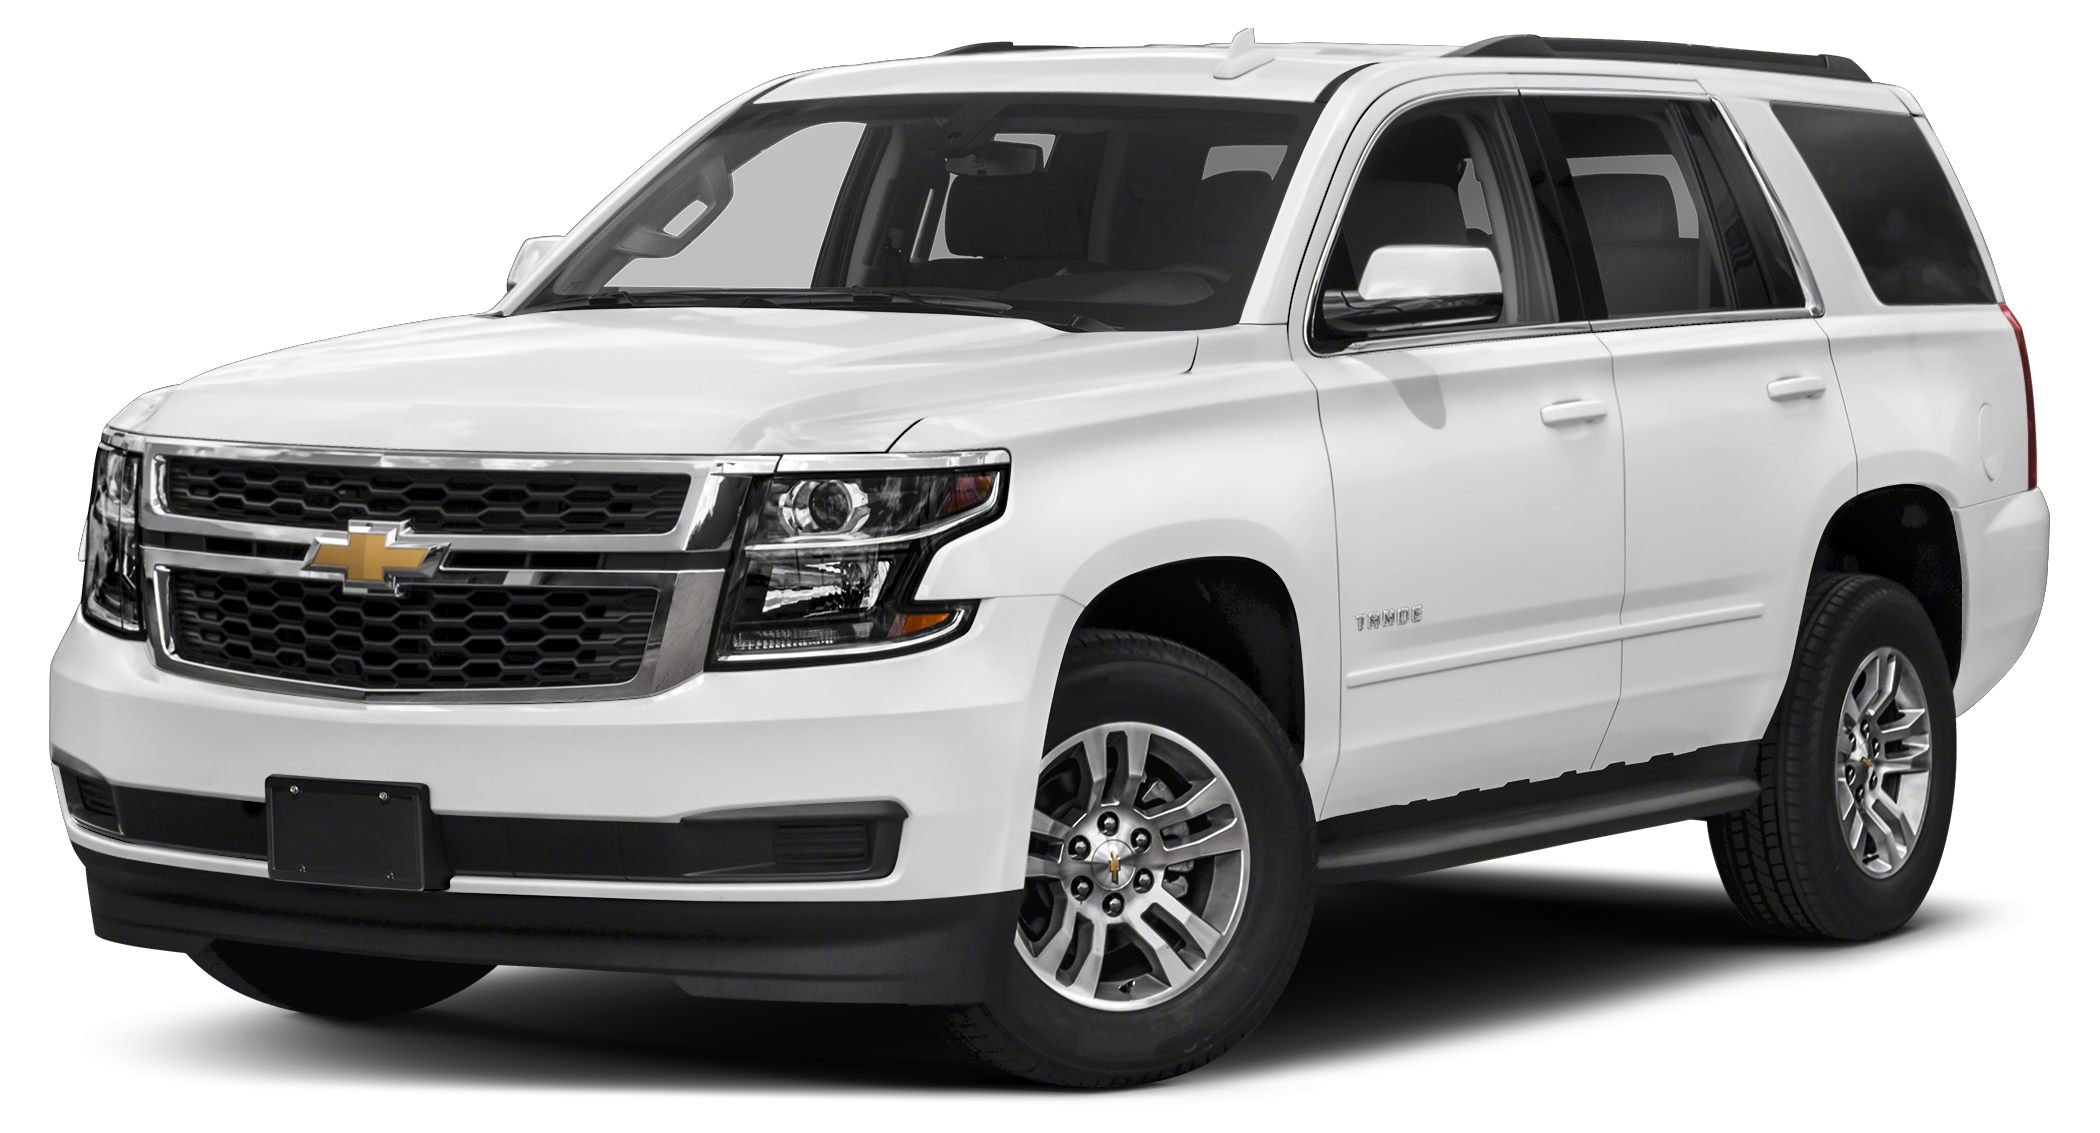 2018 Chevrolet Tahoe LT Color Summit White Stock H3245 VIN 1GNSKBKC4JR348510